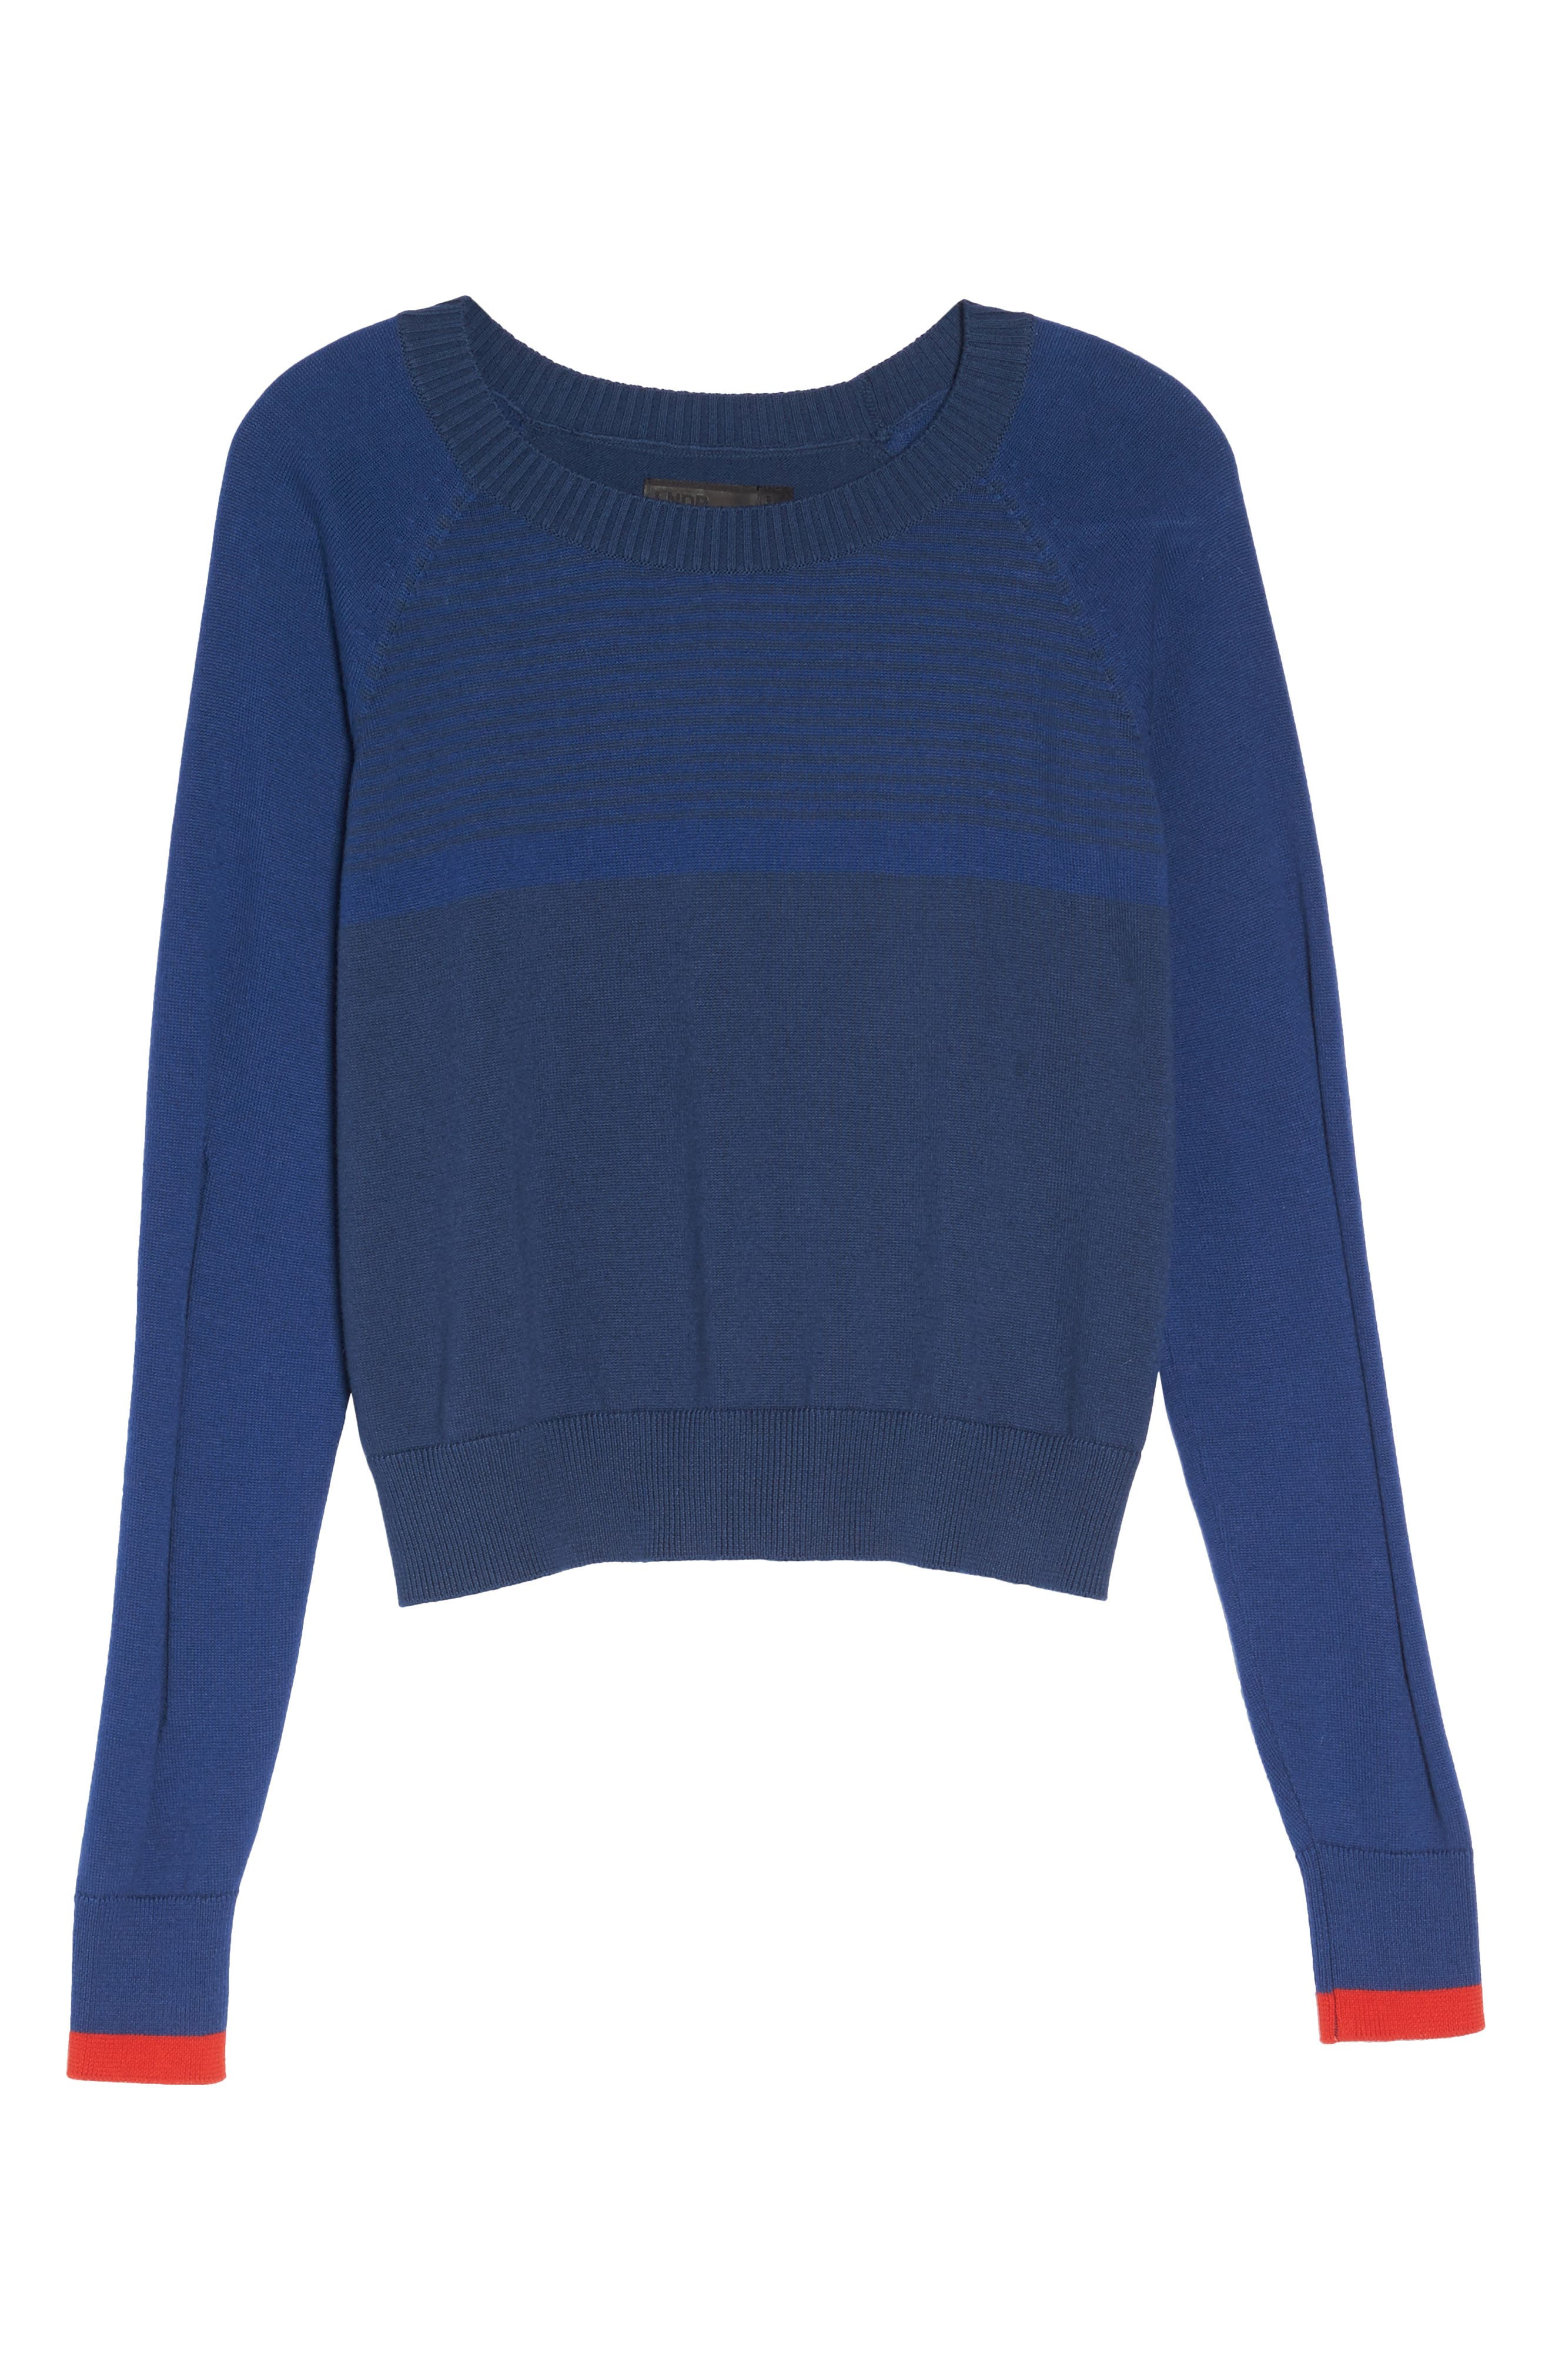 Prism Cropped Sweater,                             Alternate thumbnail 7, color,                             400